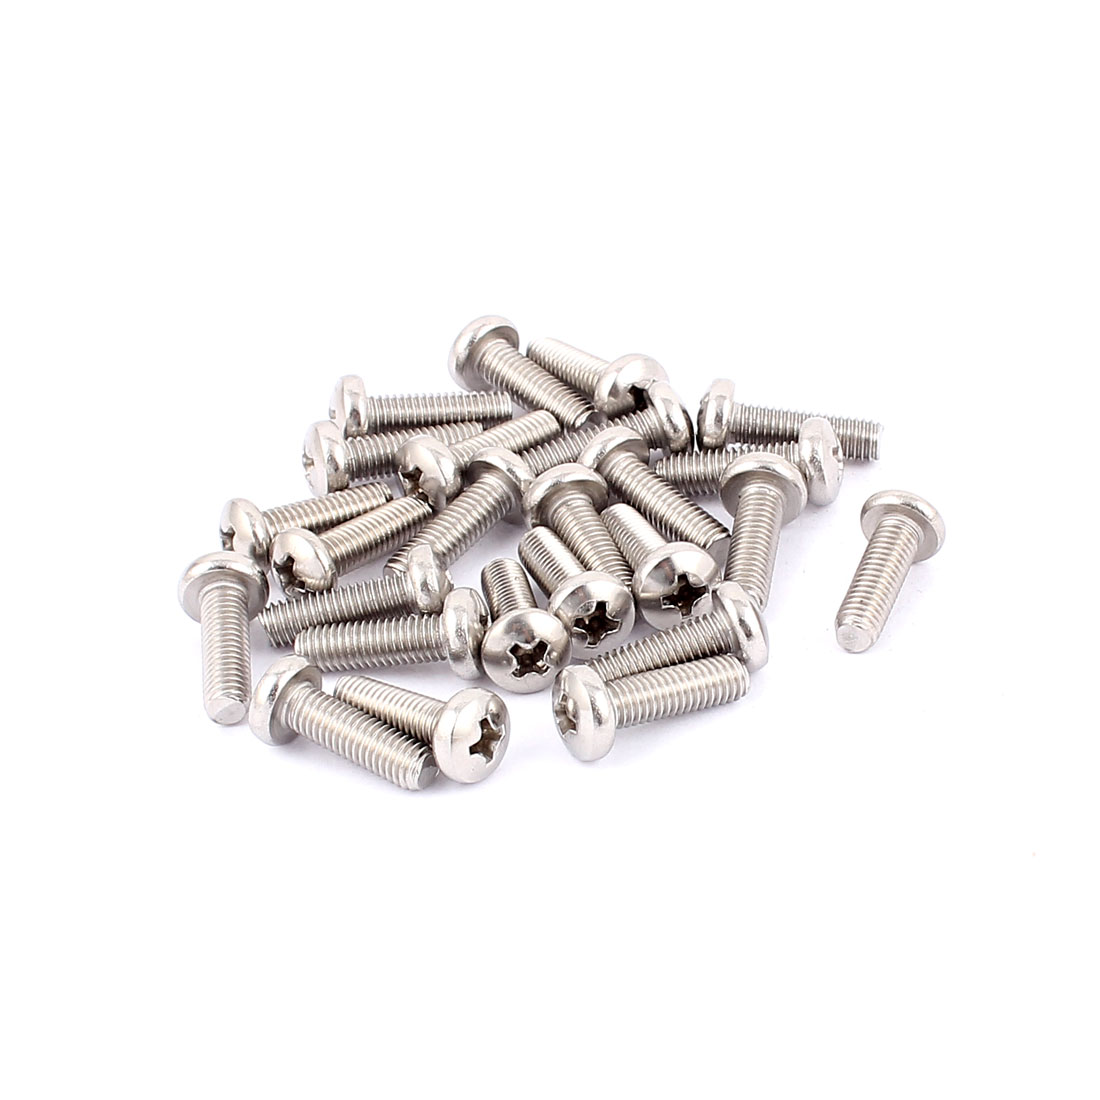 Metric M5x16mm 304 Stainless Steel Phillips Head Machine Screws 25pcs